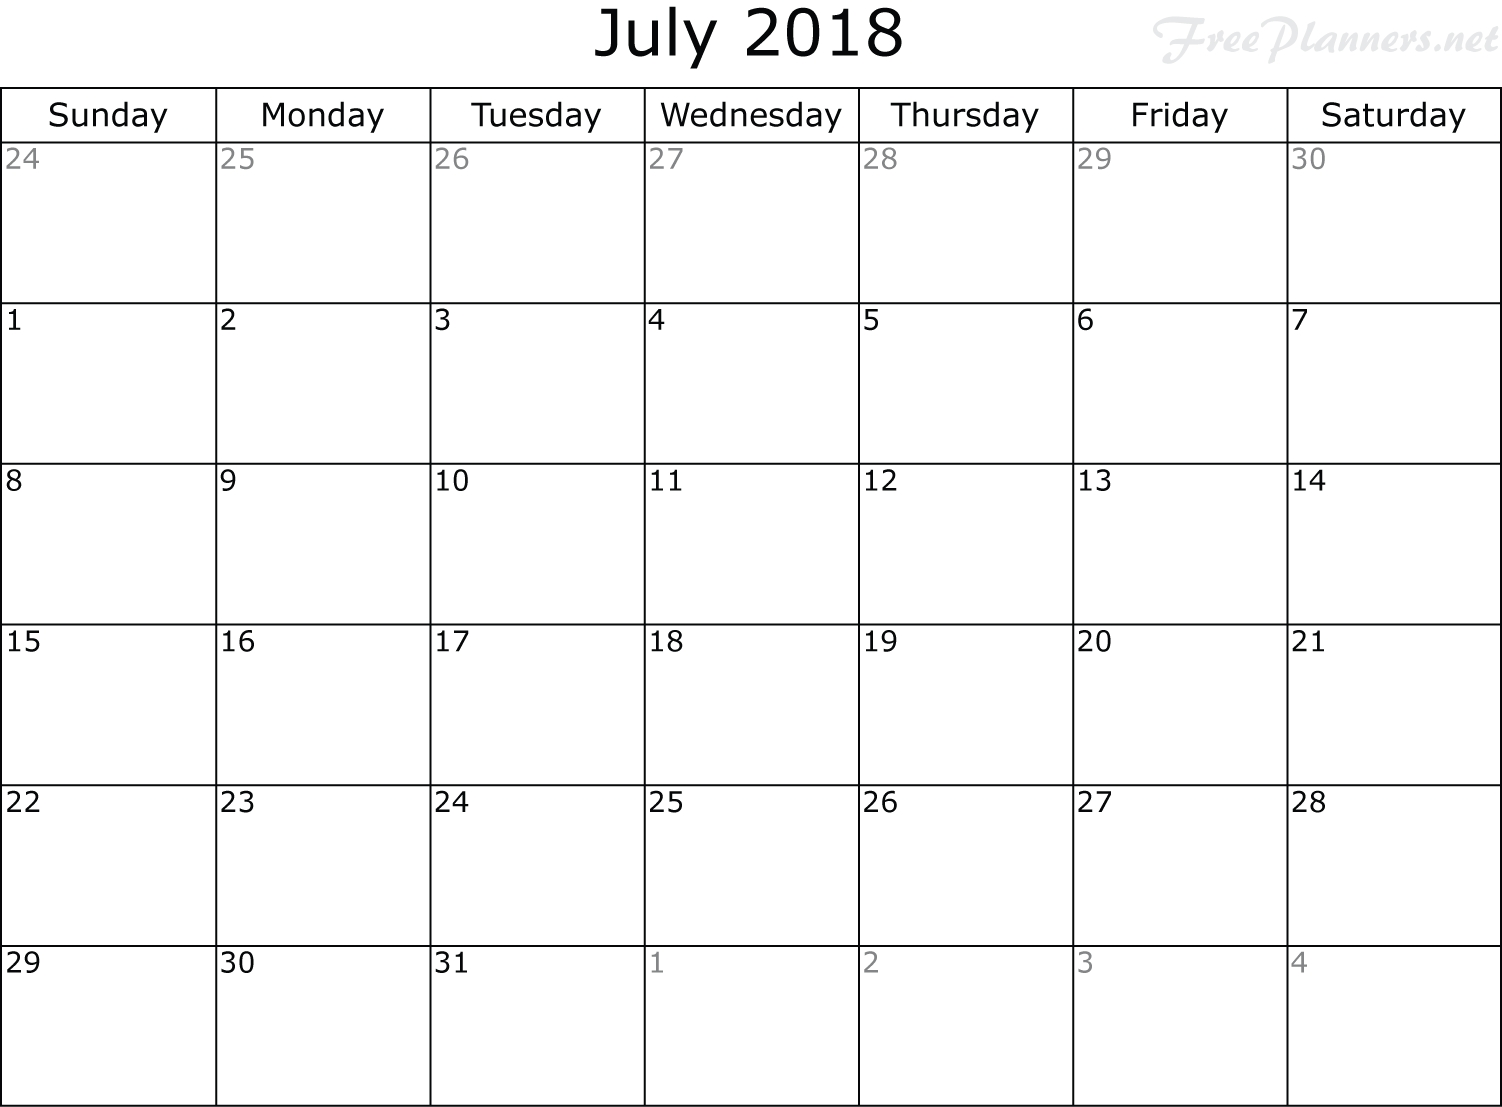 Monthly Calendar Planners - Monthly Planner - Free Planners  June And July Monthly Calendar